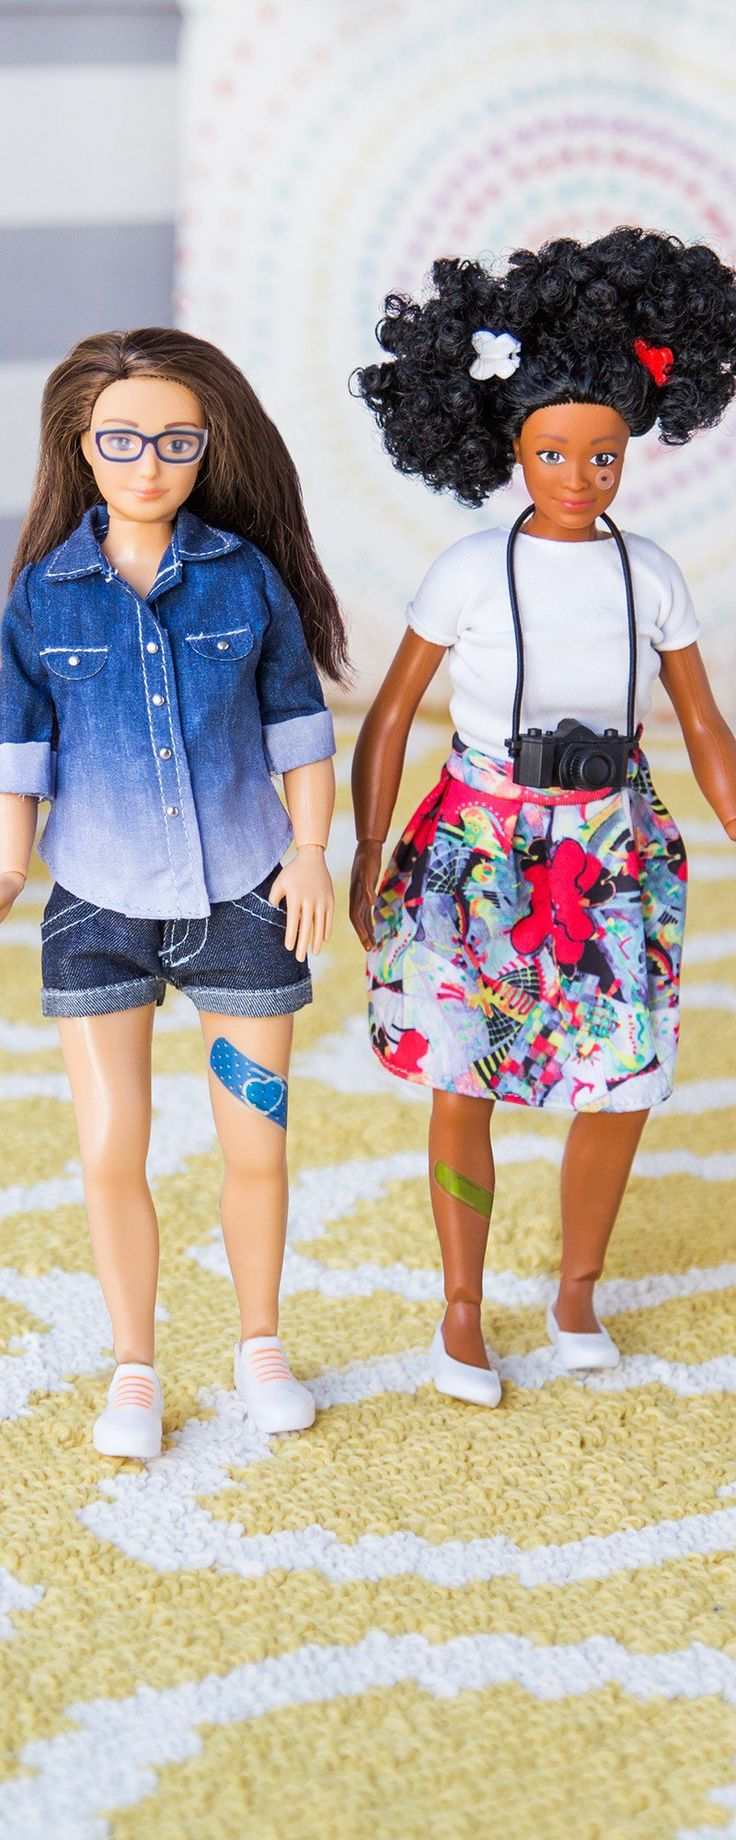 Dolls get a real life makeover - discovered by The Grommet. Proportionally designed to represent an average women and encourage positive body image.